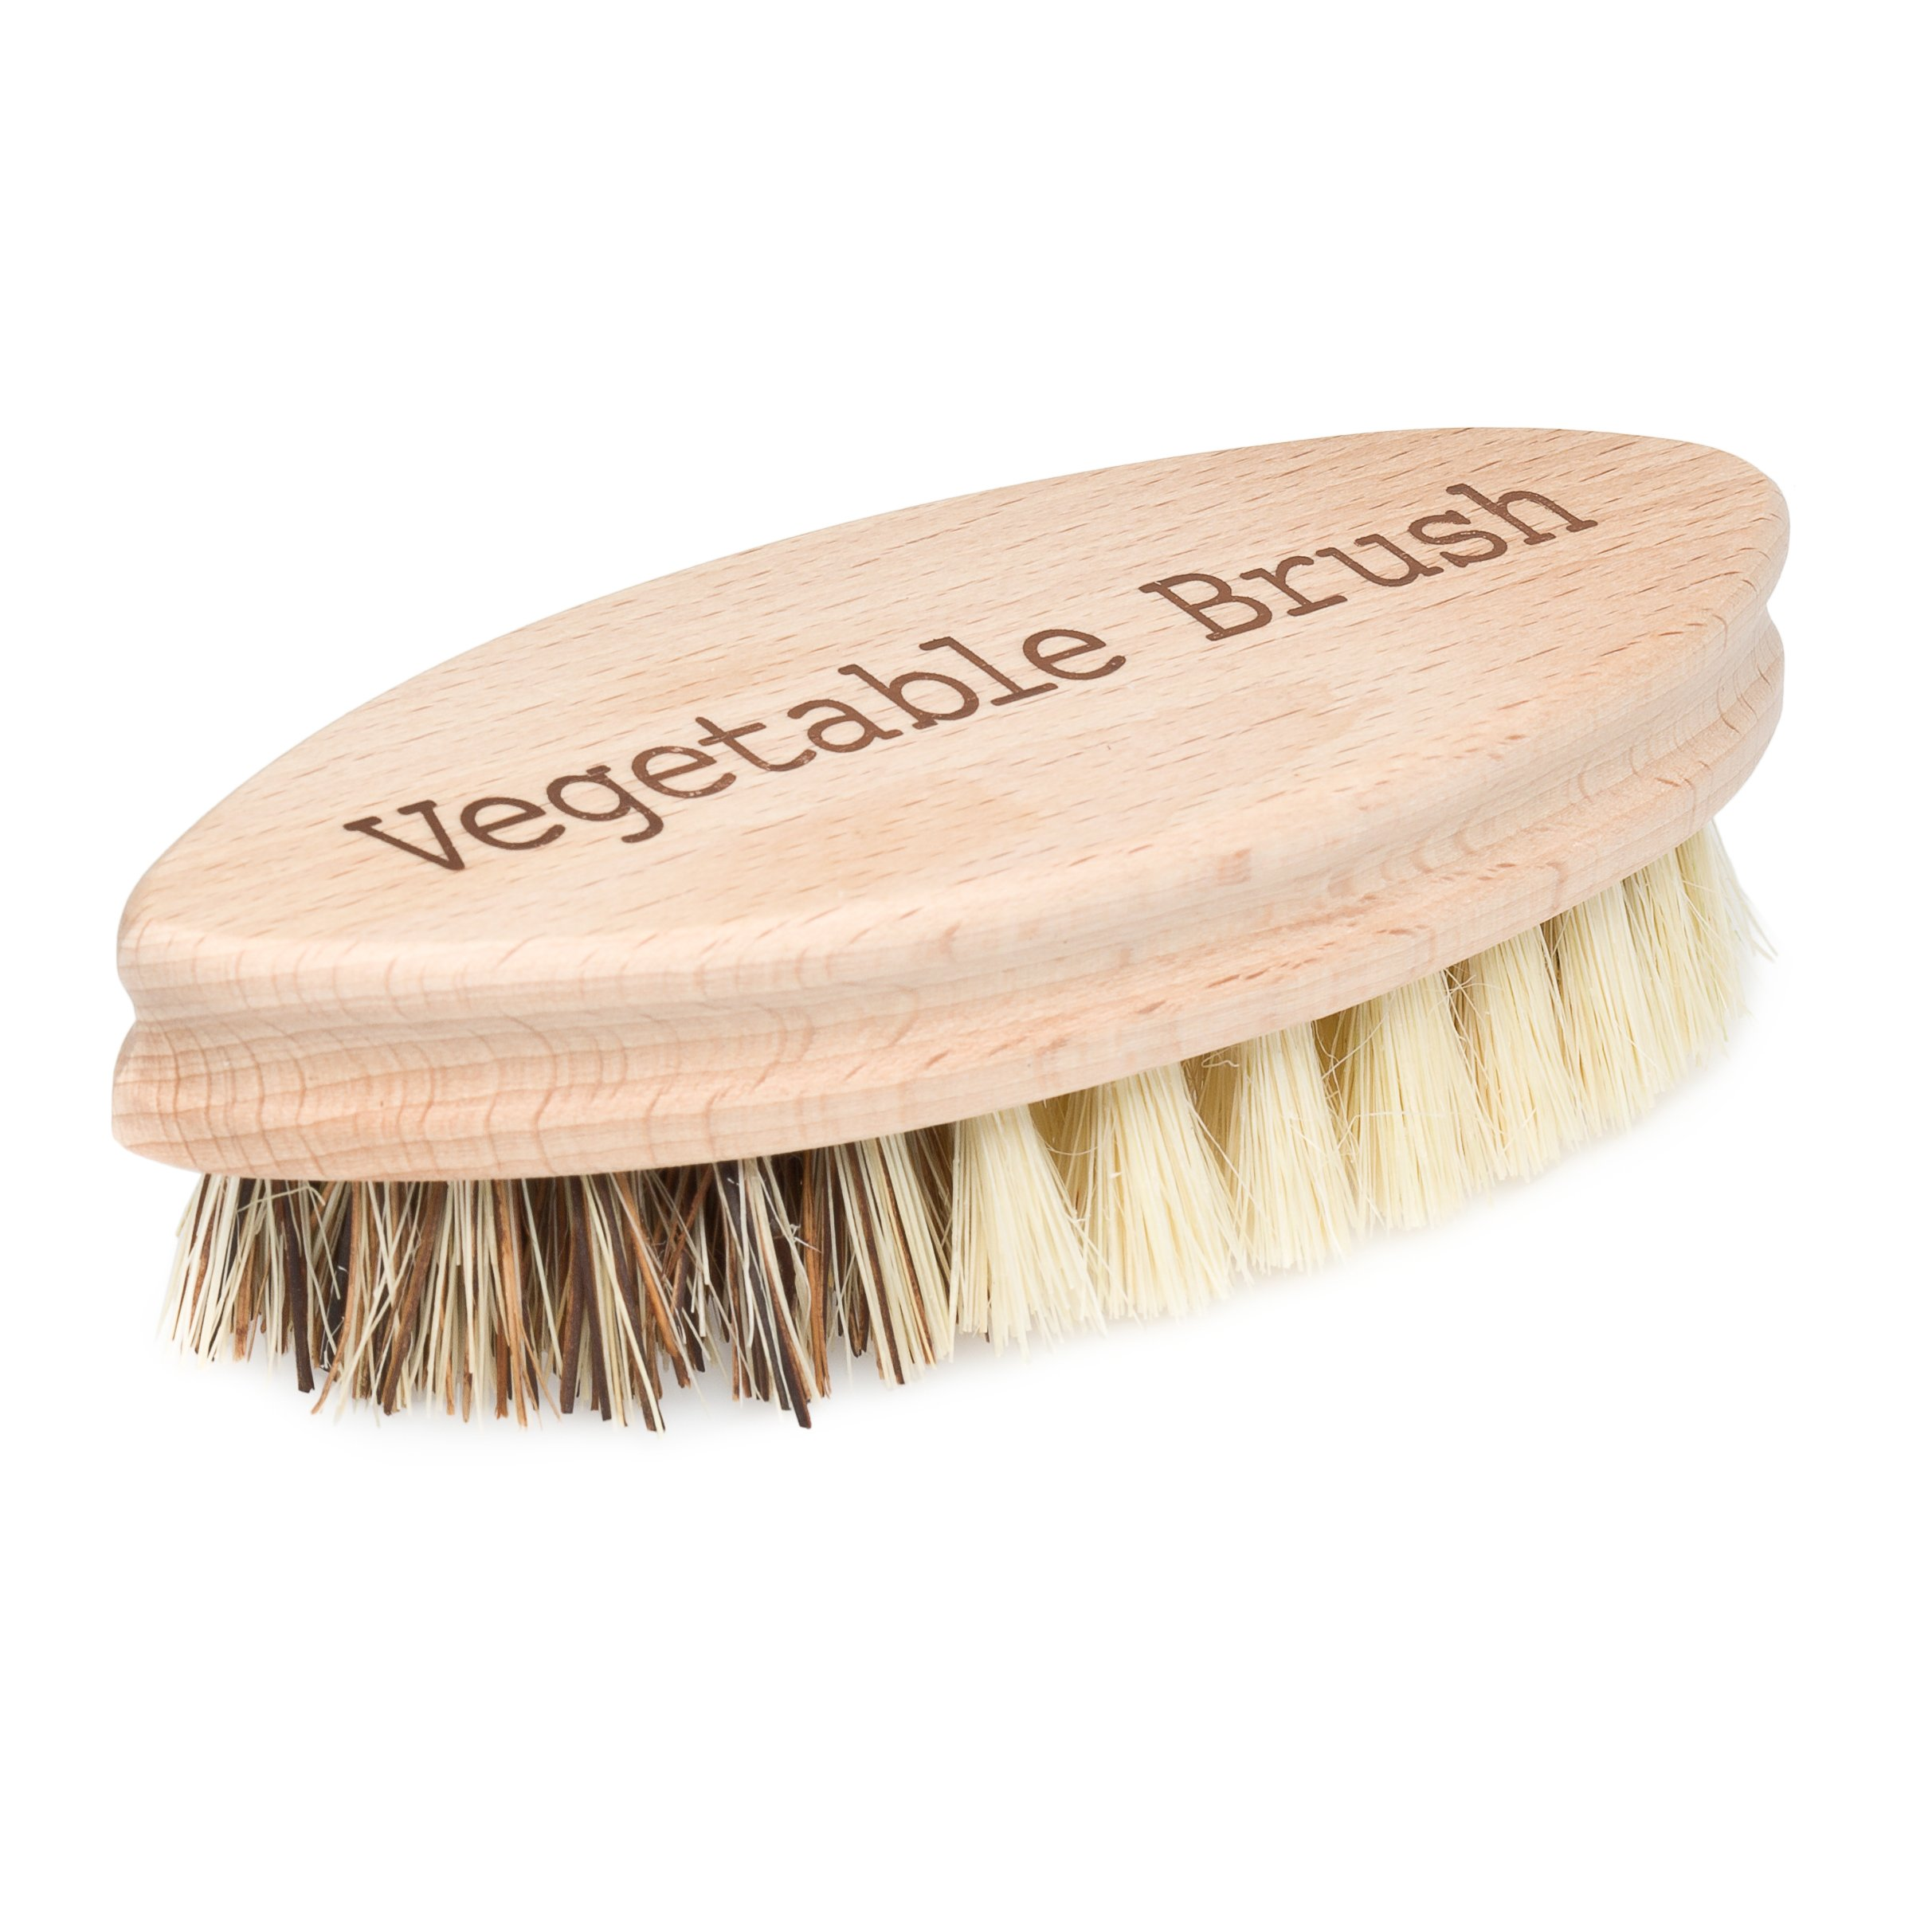 Redecker Hard and Soft Side Vegetable Brush, Durable Beechwood Handle, 2 Different Bristle Strengths for Cleaning Delicate or Tough-skinned Vegetables, 5-1/4'', Made in Germany